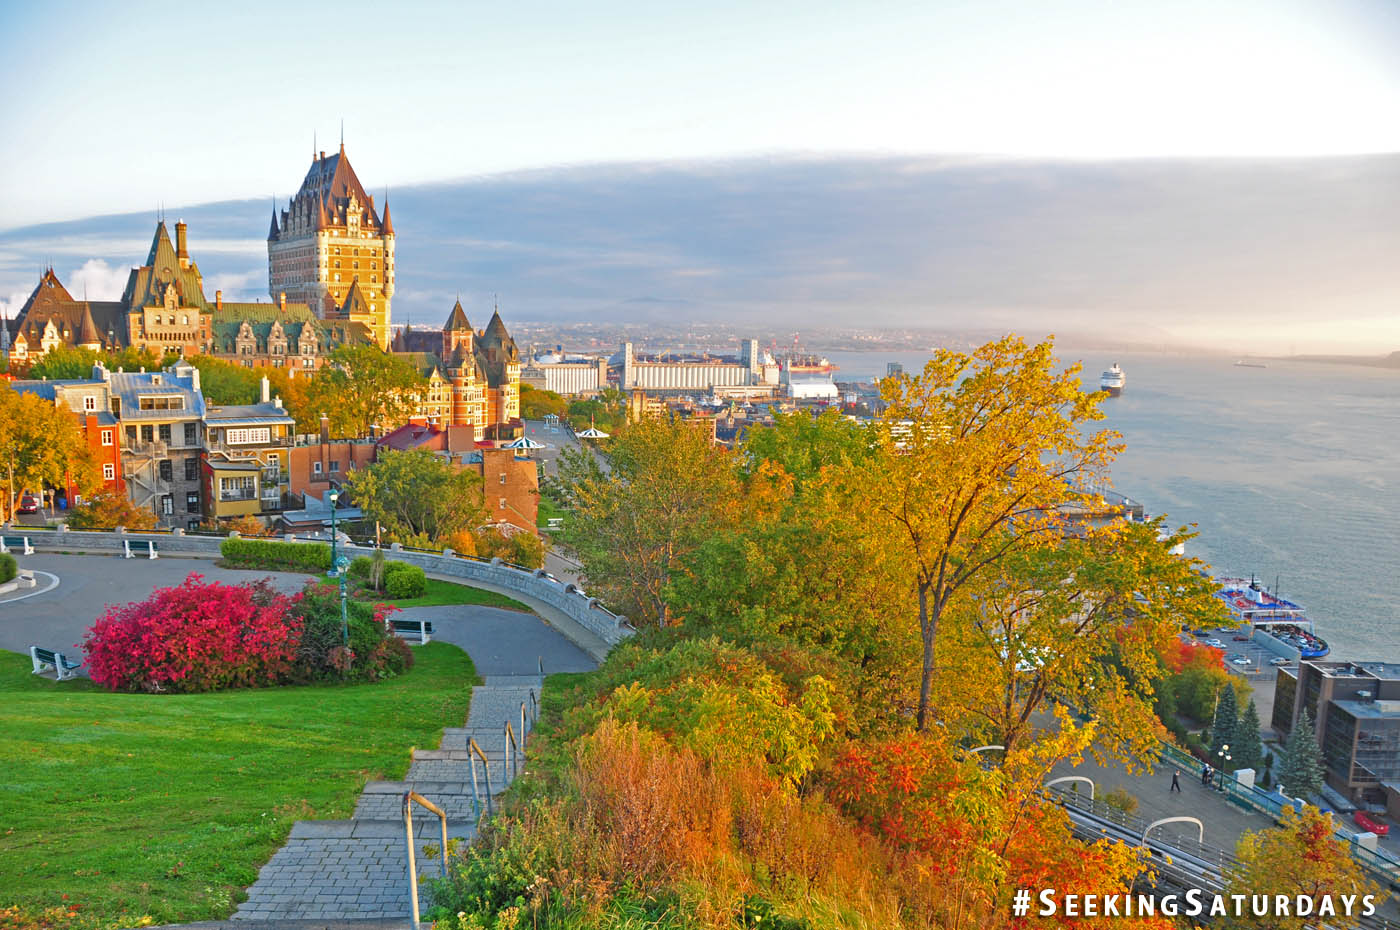 Morning sunrise at Chateau Frontenac, Quebec City, Canada